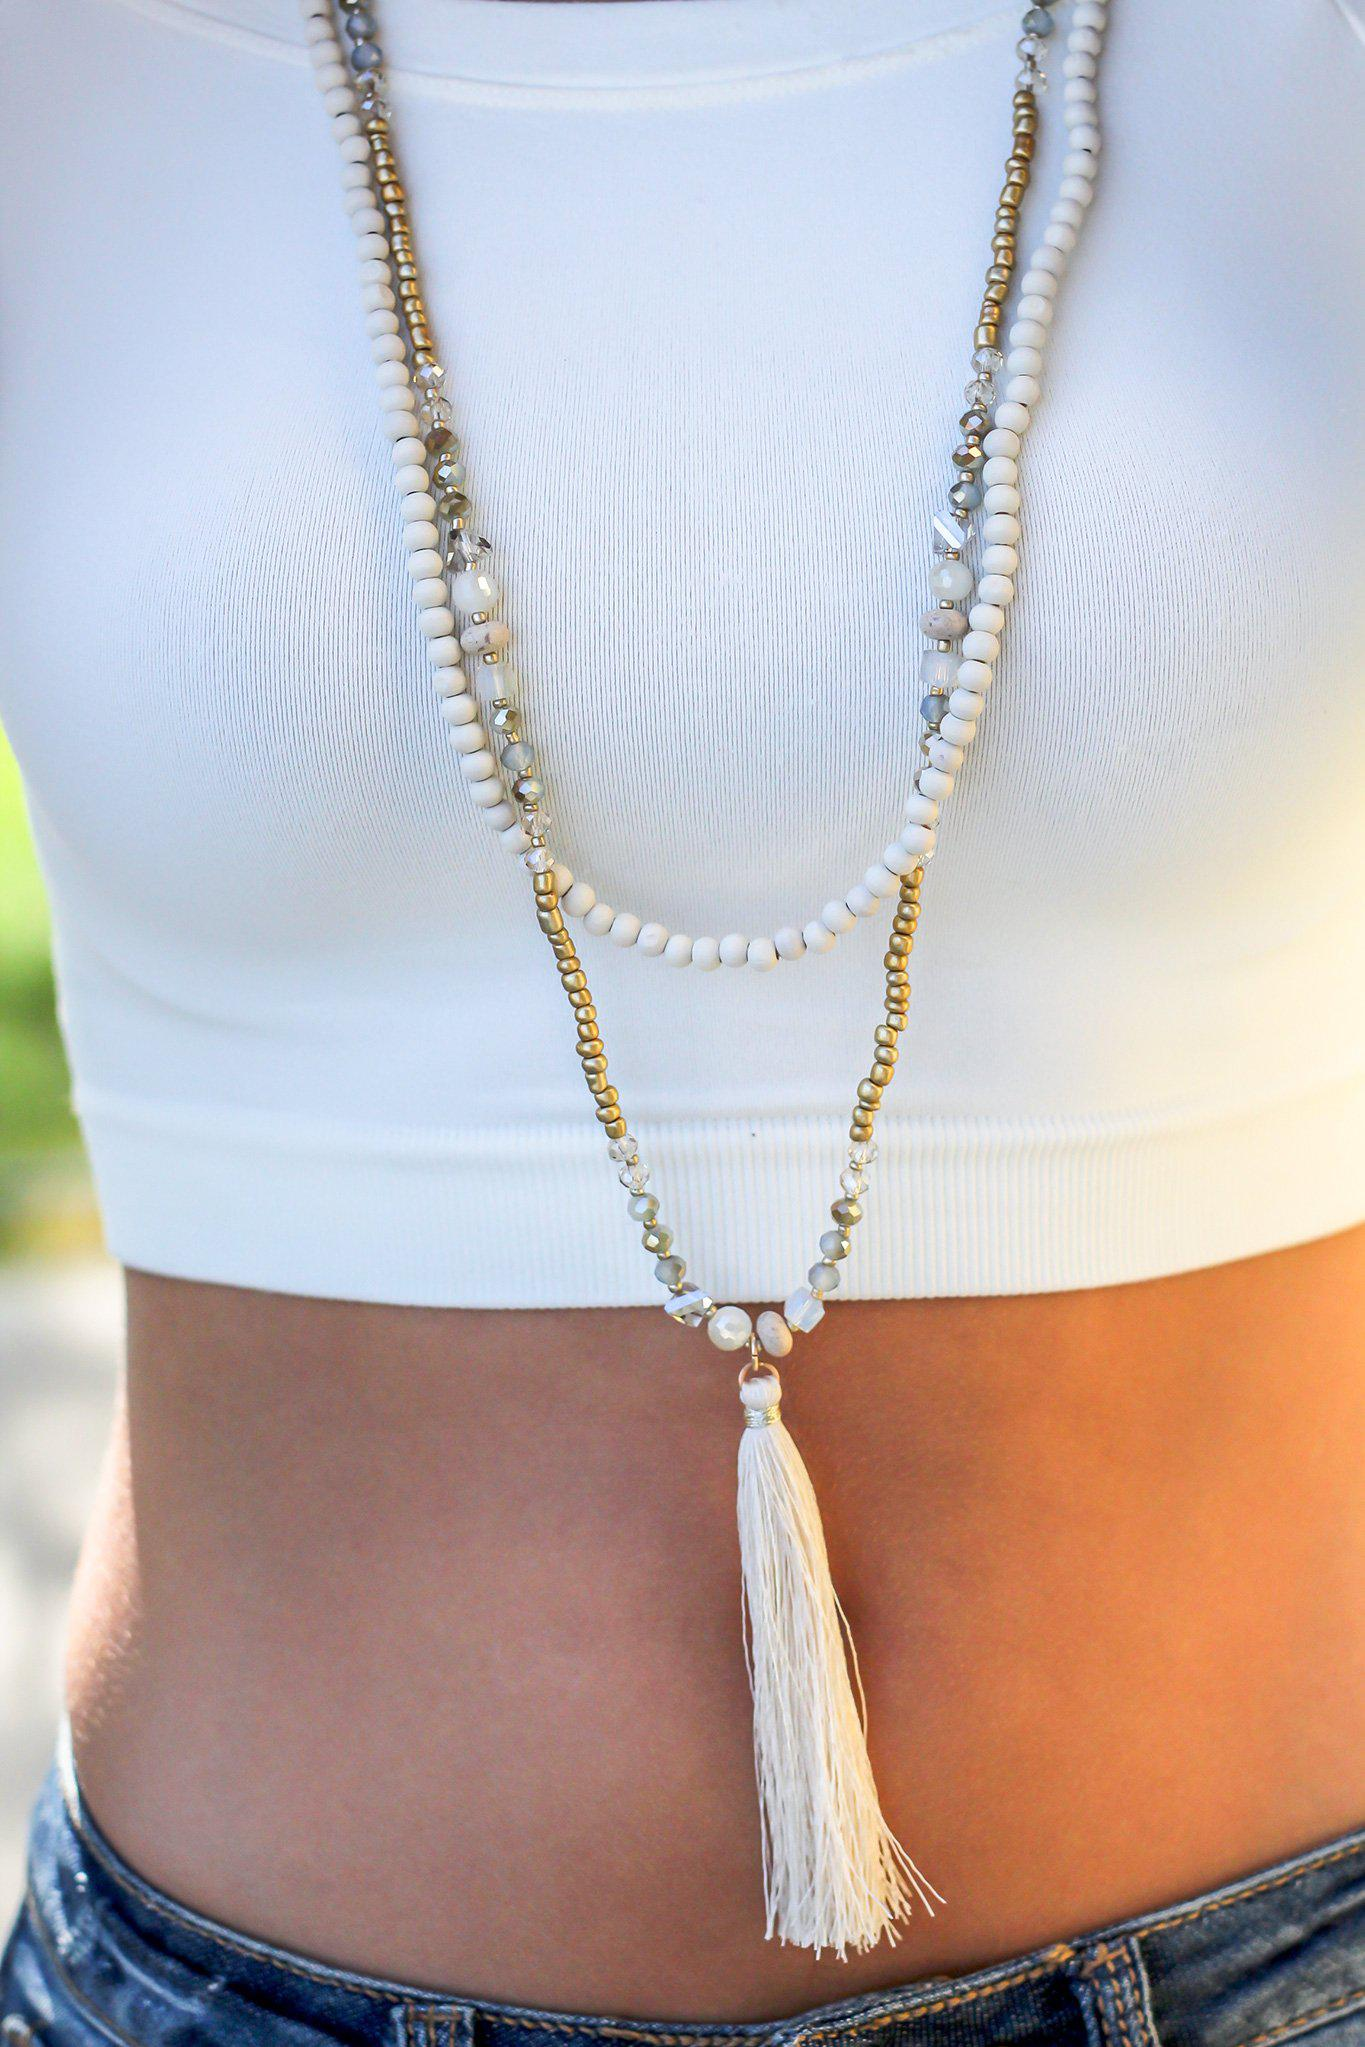 Ivory and Gold Beaded Necklace with Tassel